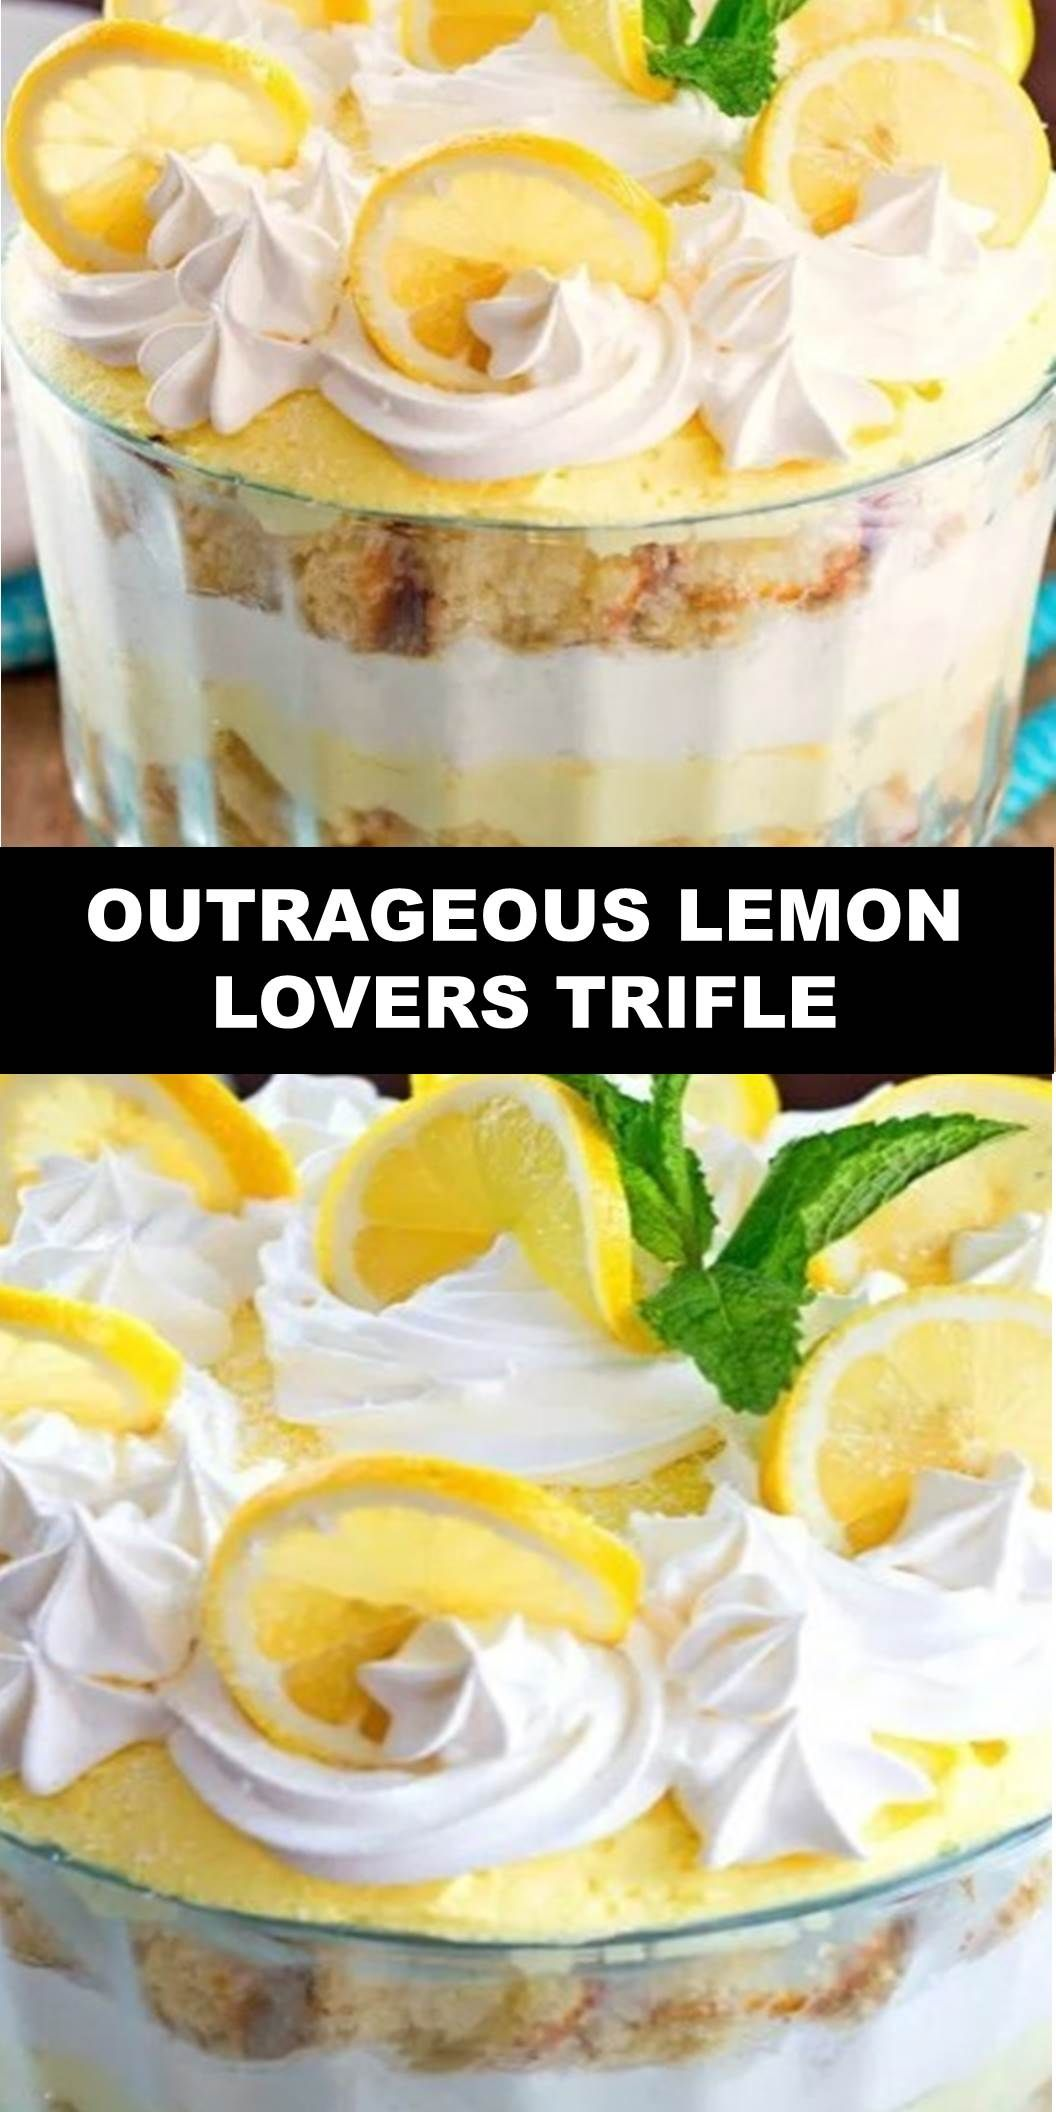 The World's Most Delicious Cake Outrageous Lemon Lovers Trifle Servings: 12Author: Melissa Sperka